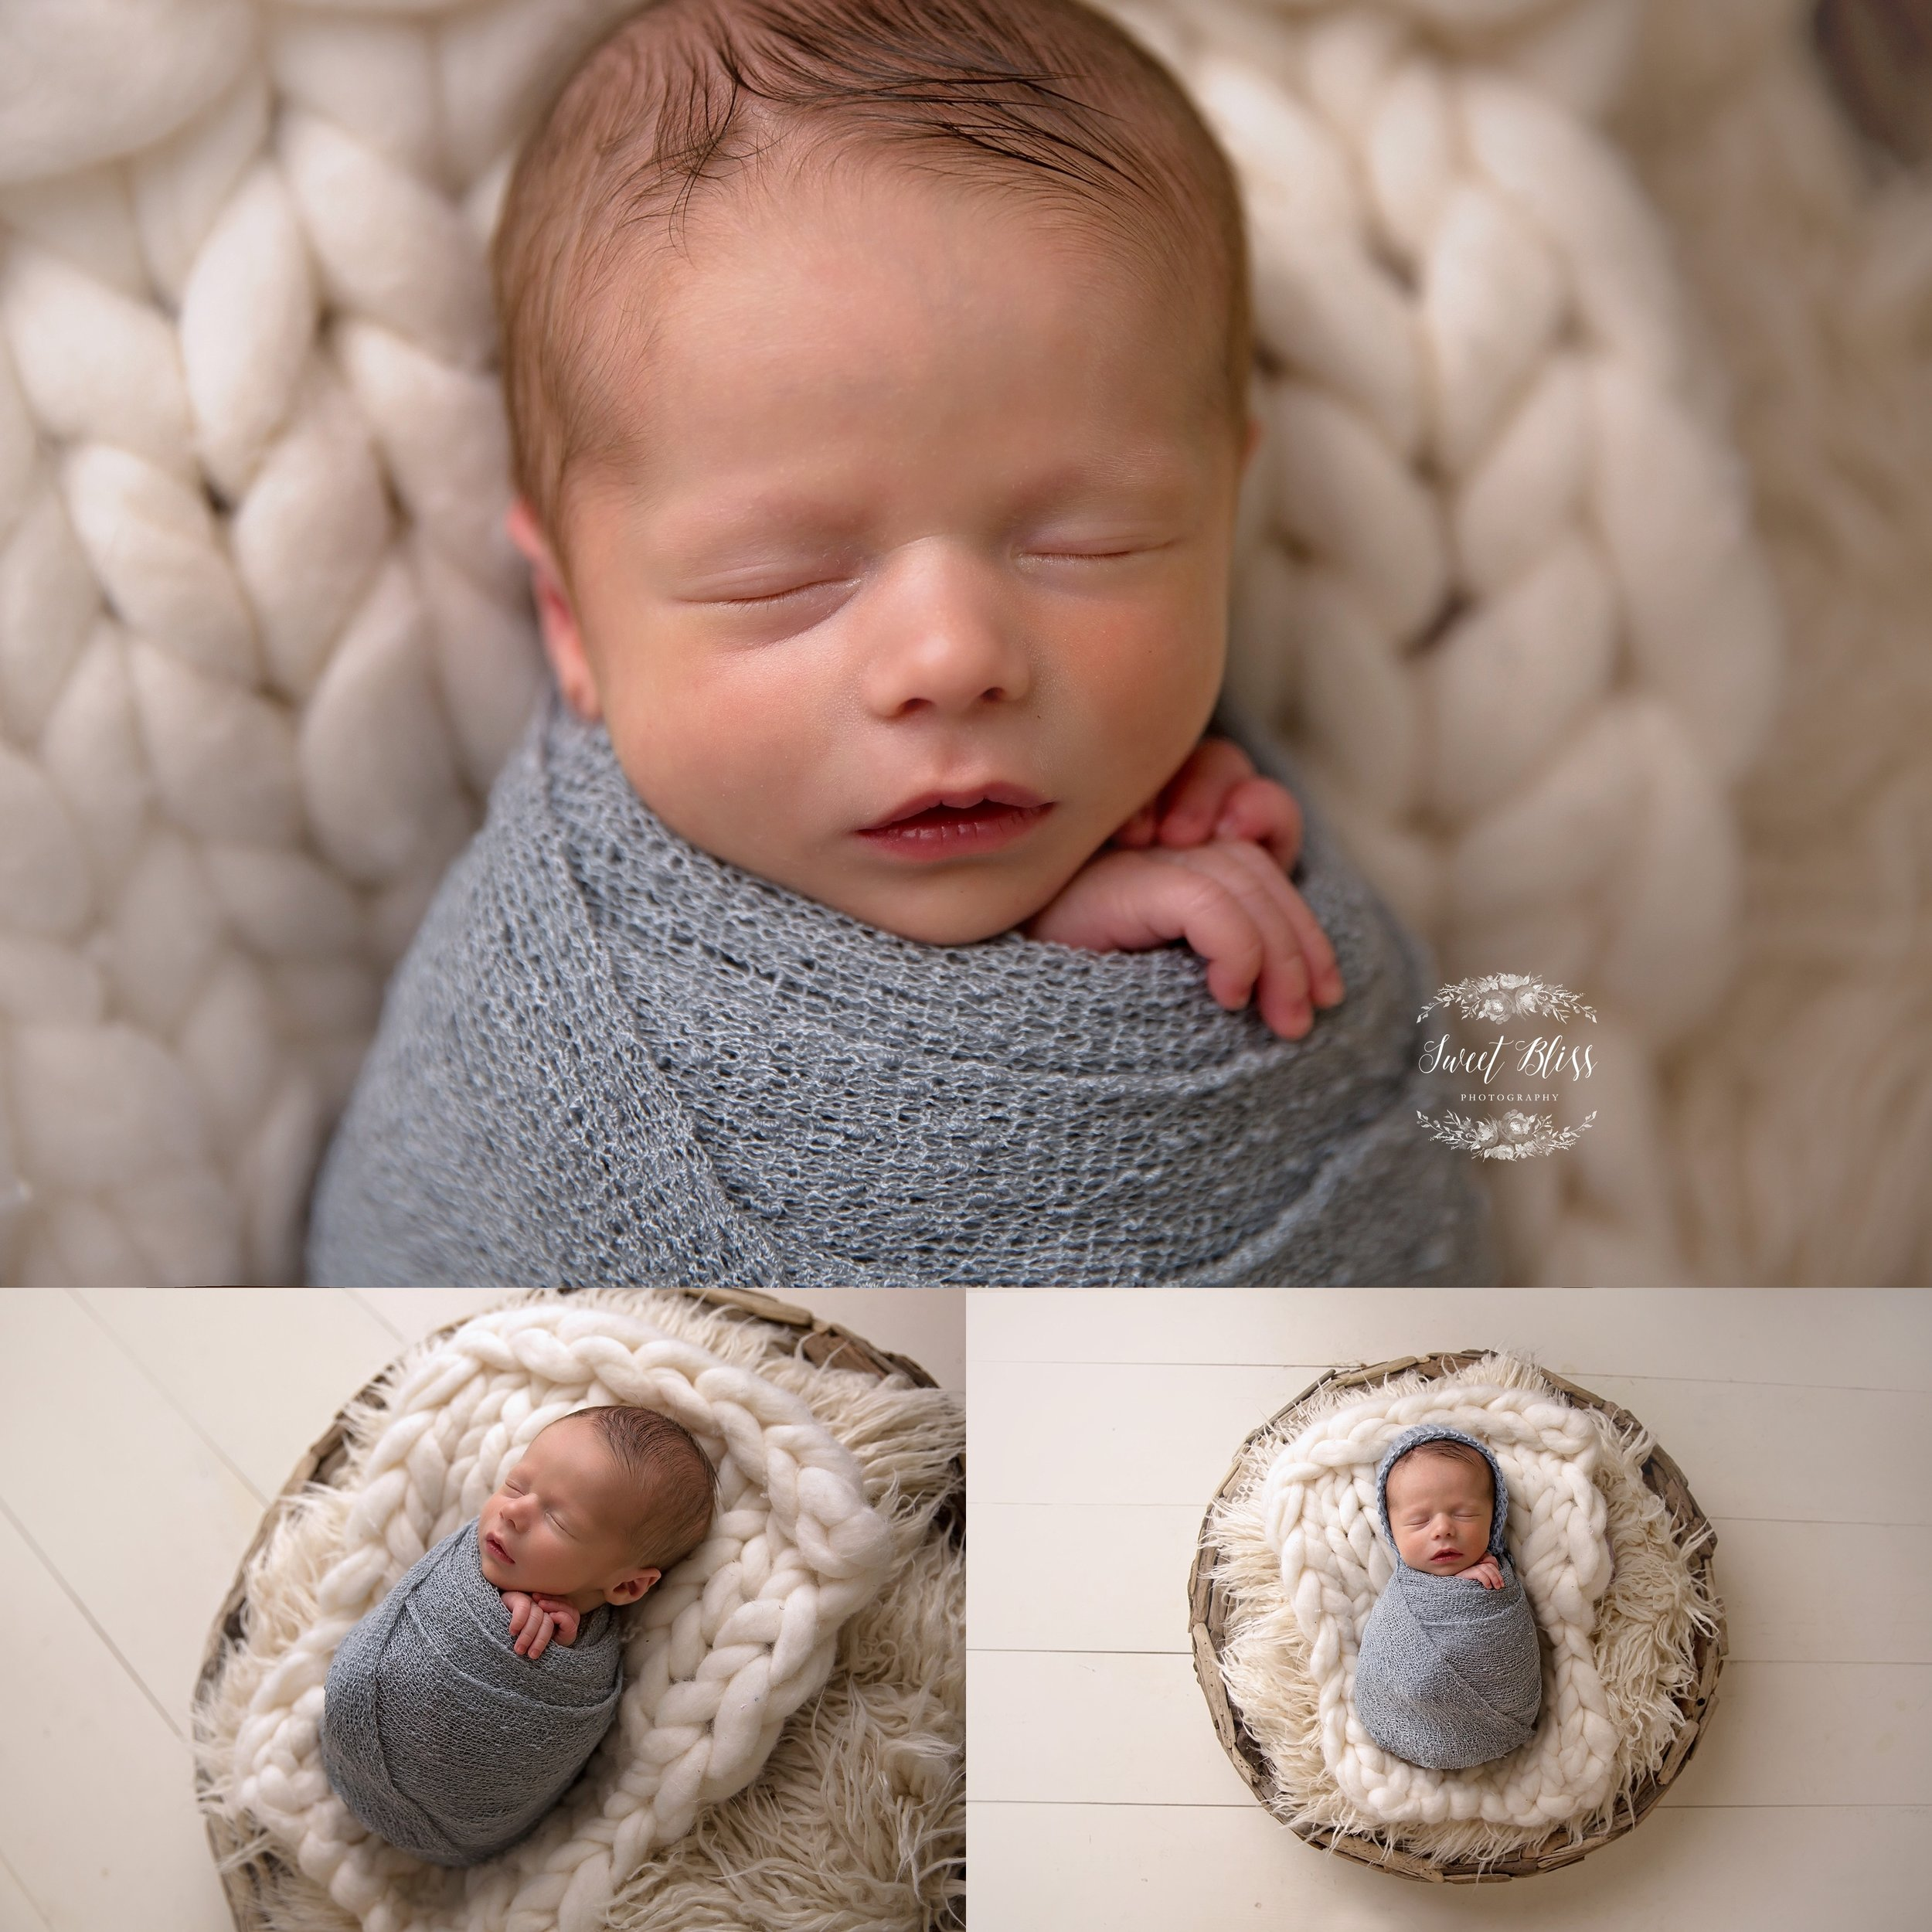 Baltimorenewbornphotographer_harfordcountynewborn_greybluebowl2.jpg